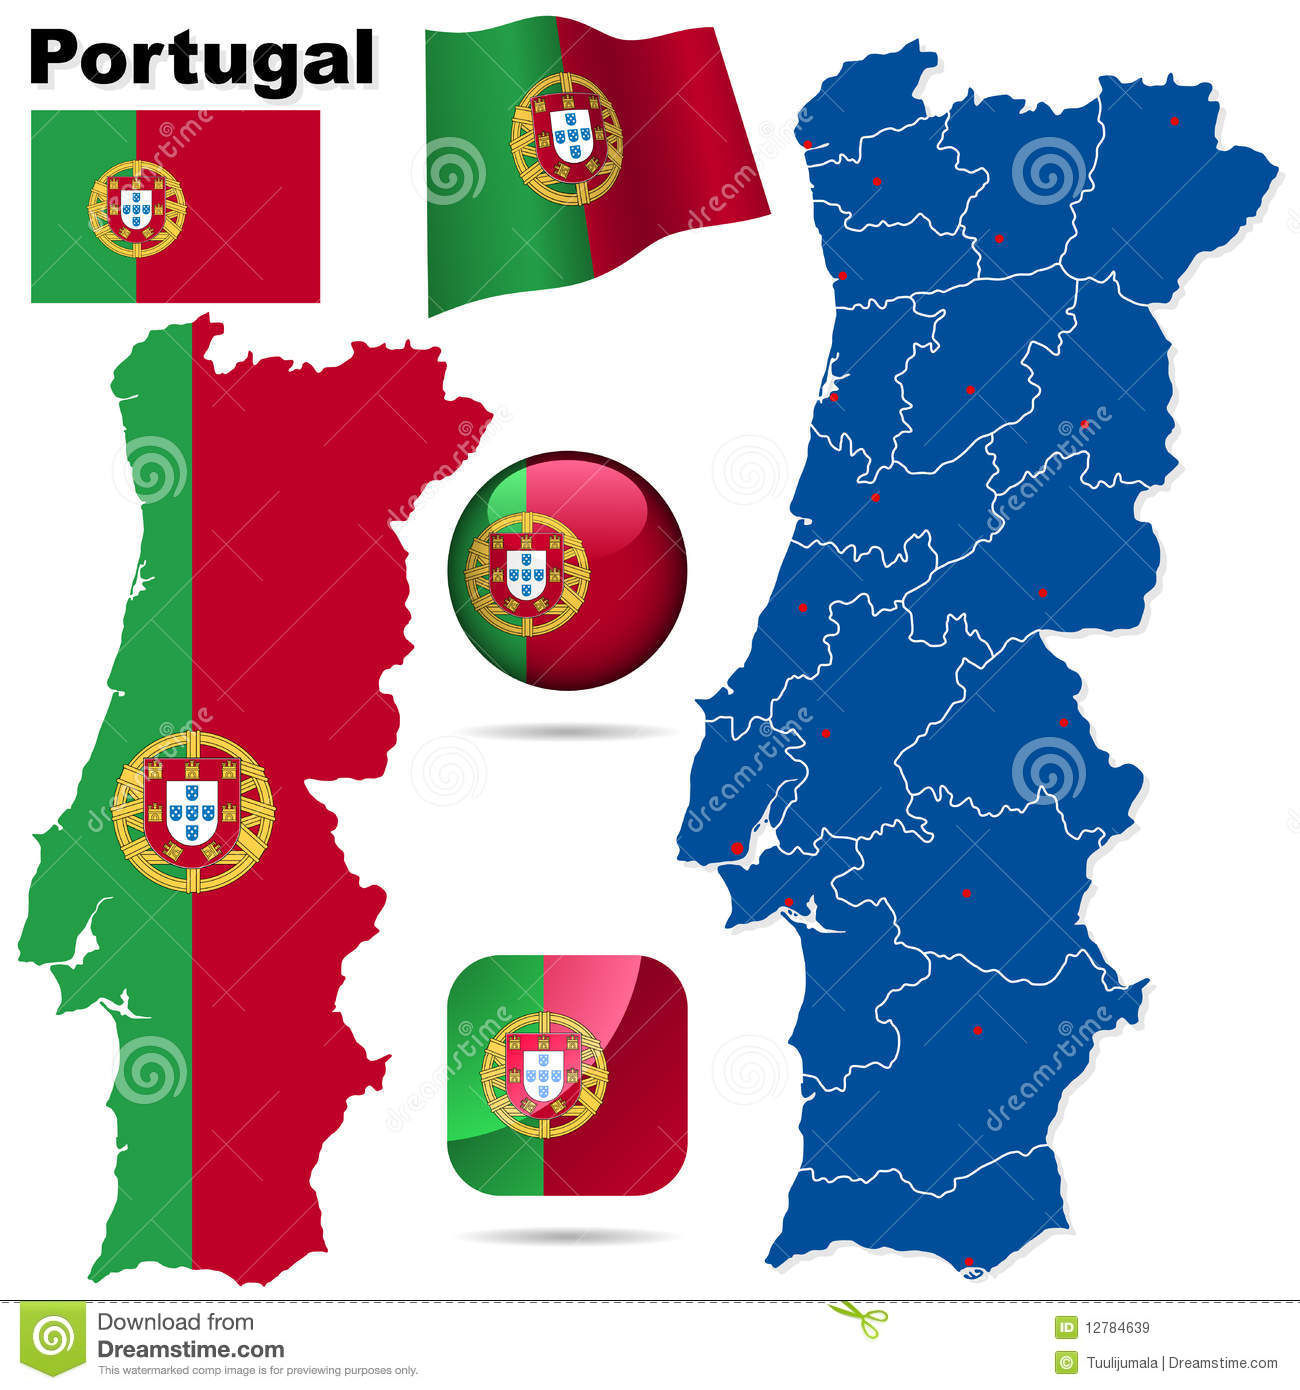 Portugal Vector Set Royalty Free Stock Images Image - Portugal map vector